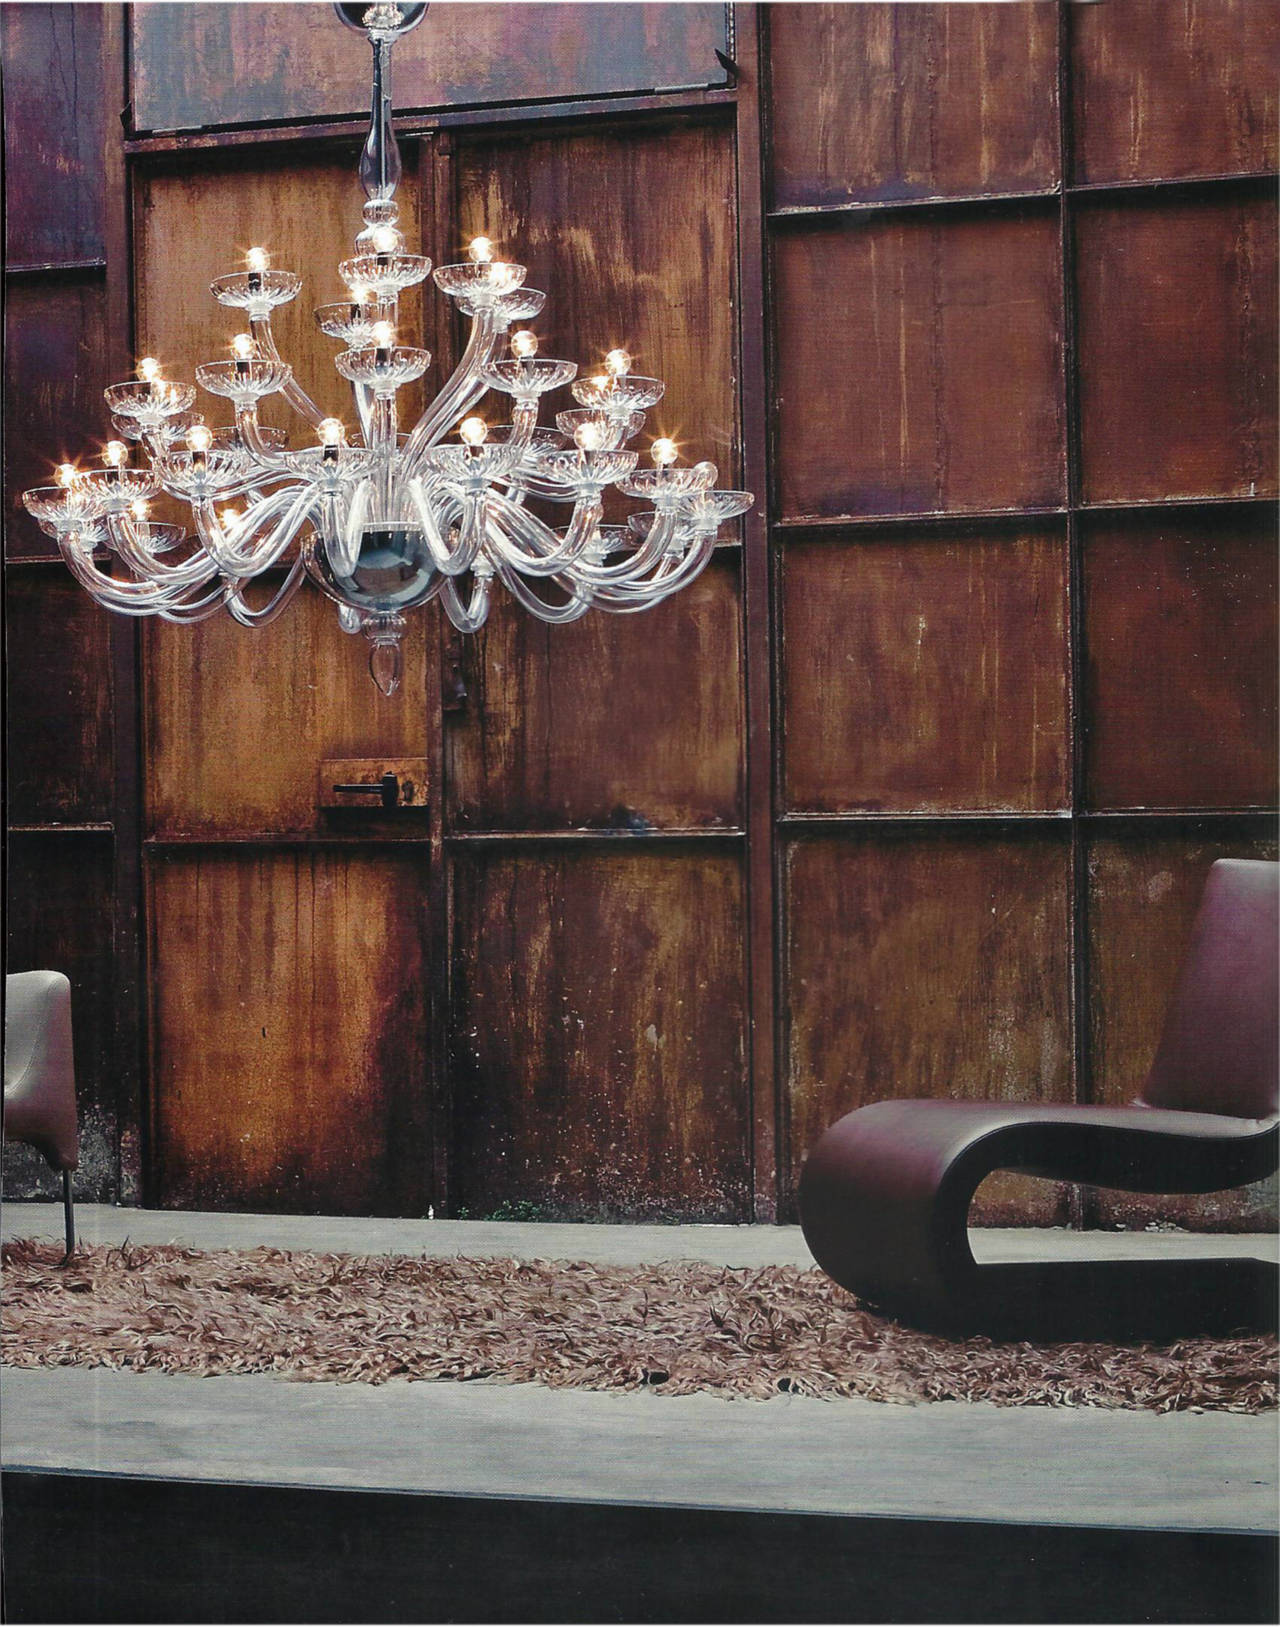 Pure and elegant 3 tier Italian Mid-Century Modern Style Venetian glass chandelier in clear glass in a sober, modern traditional style symmetrically arranged with 15 arms on the lower level, ten on the middle and five arms on the top tier.   There